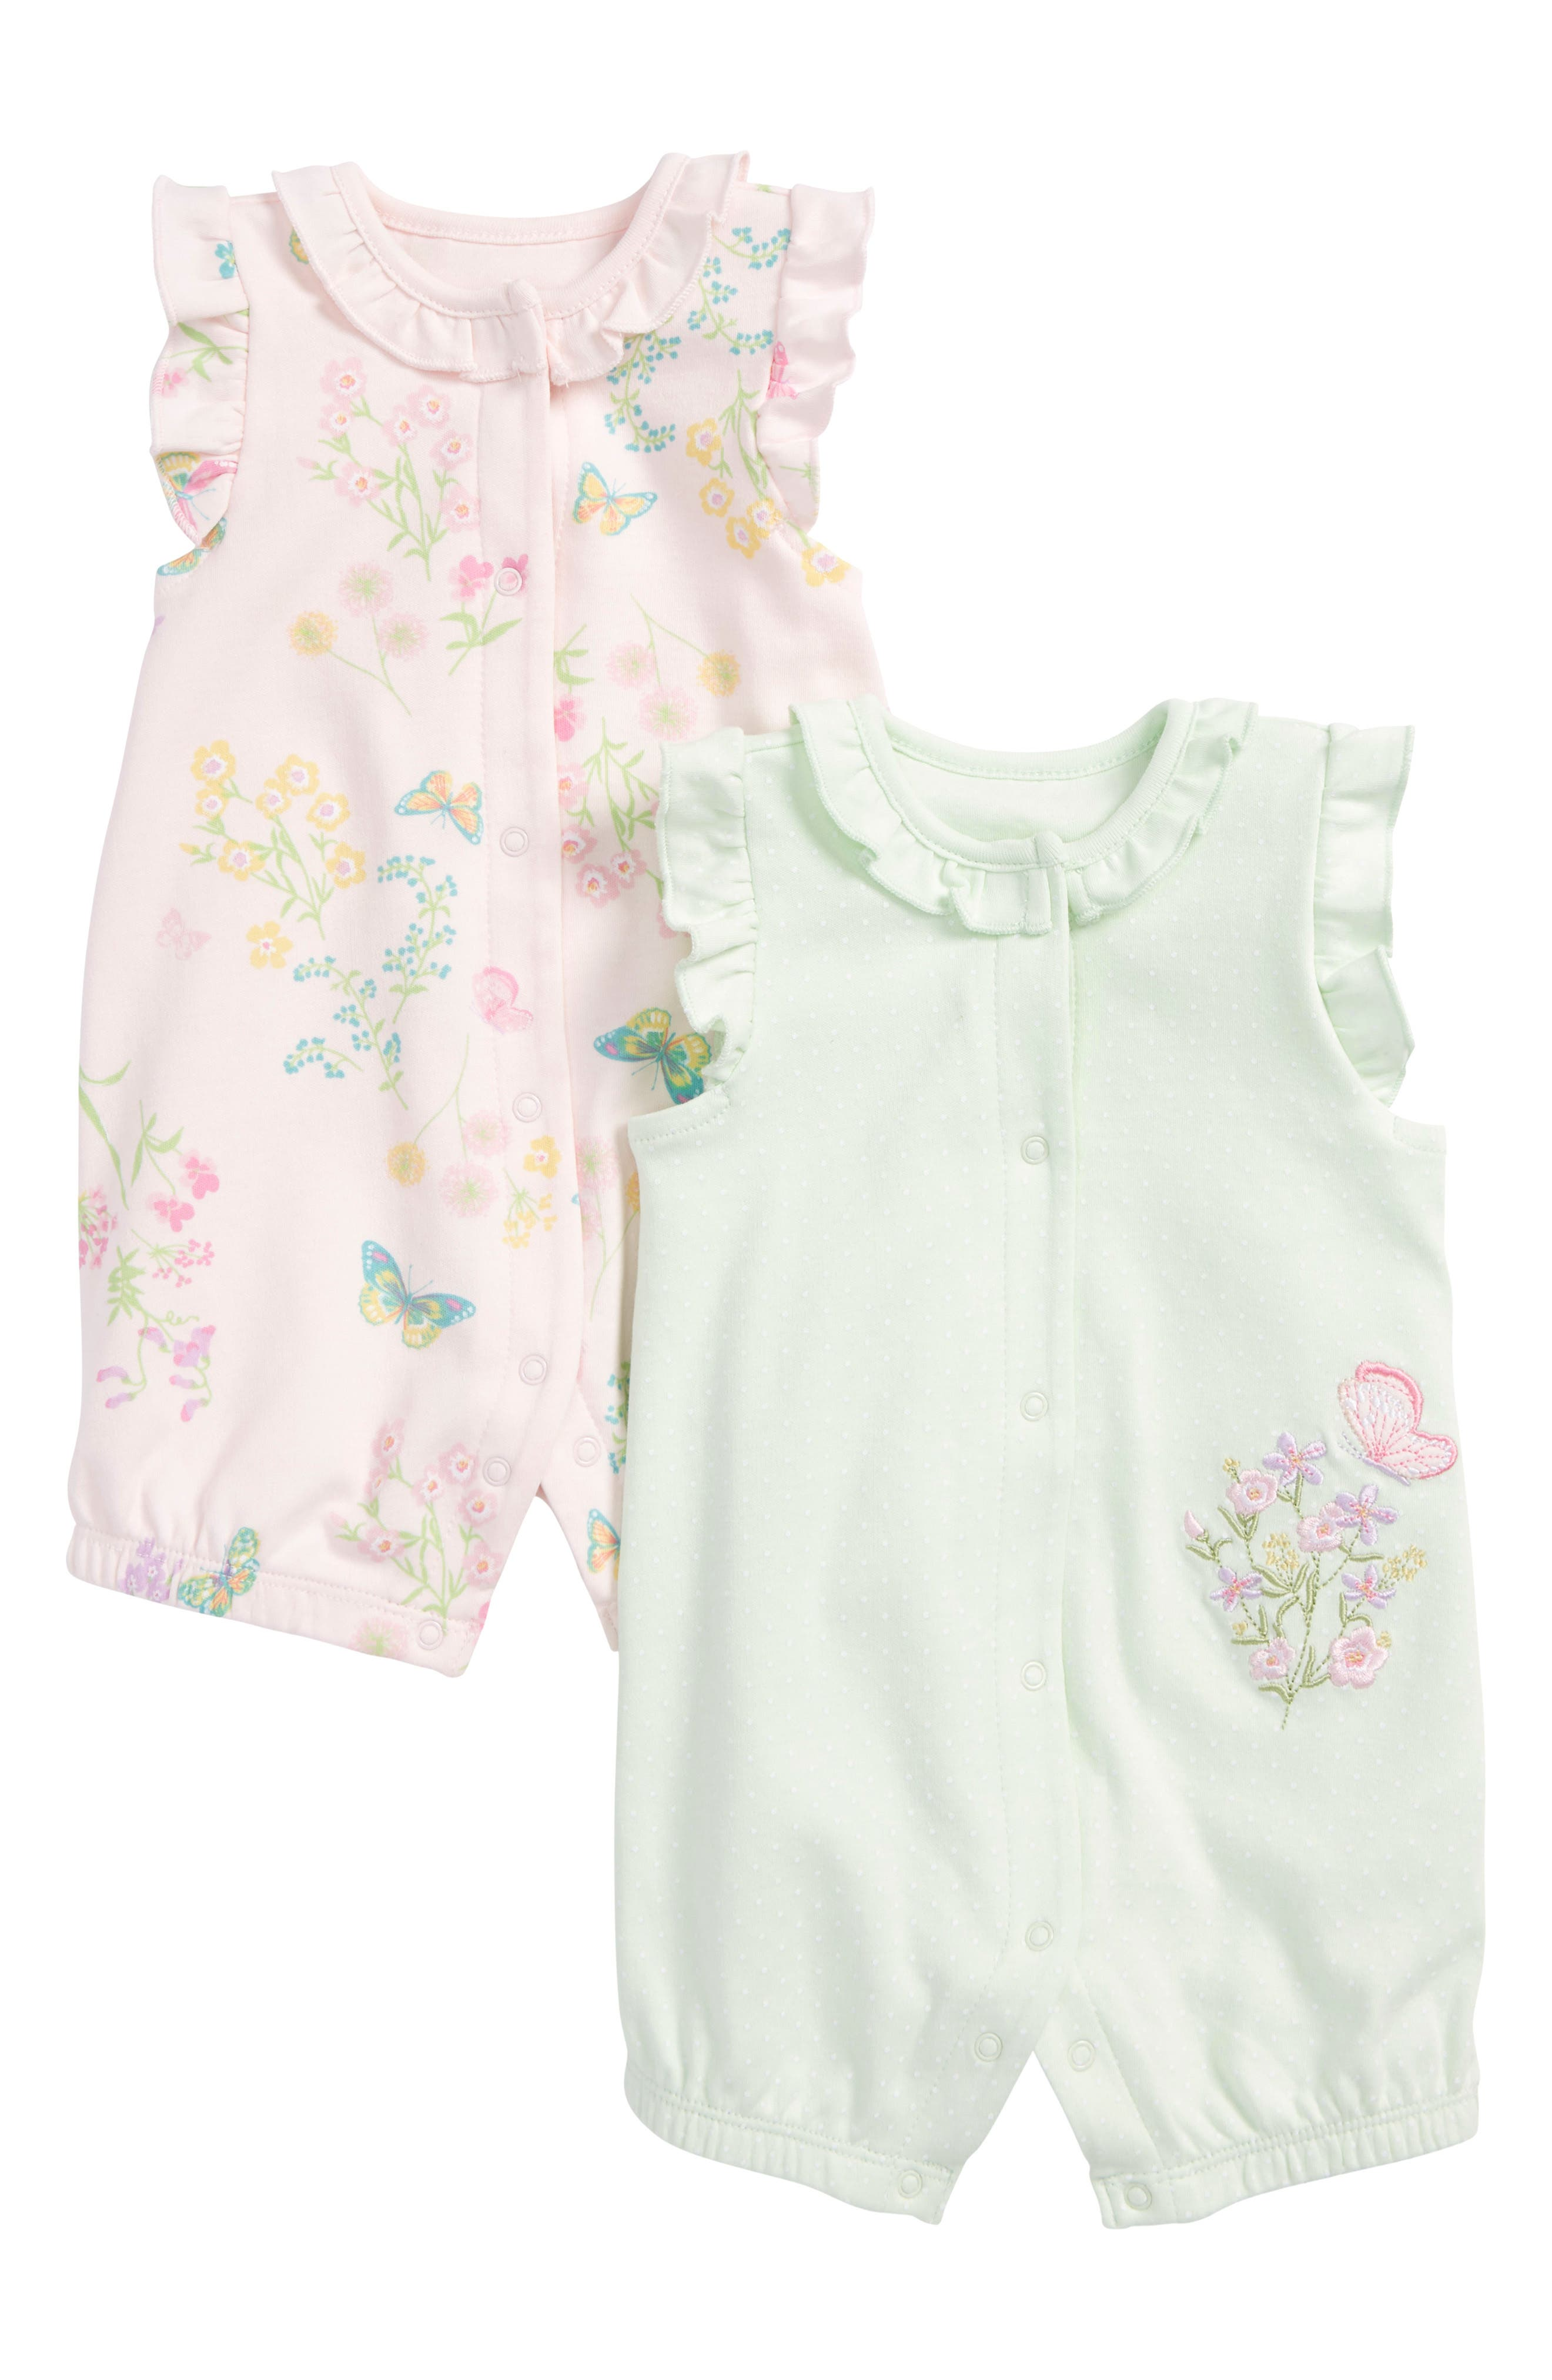 Main Image - Little Me Botanical 2-Pack Rompers (Baby Girls)